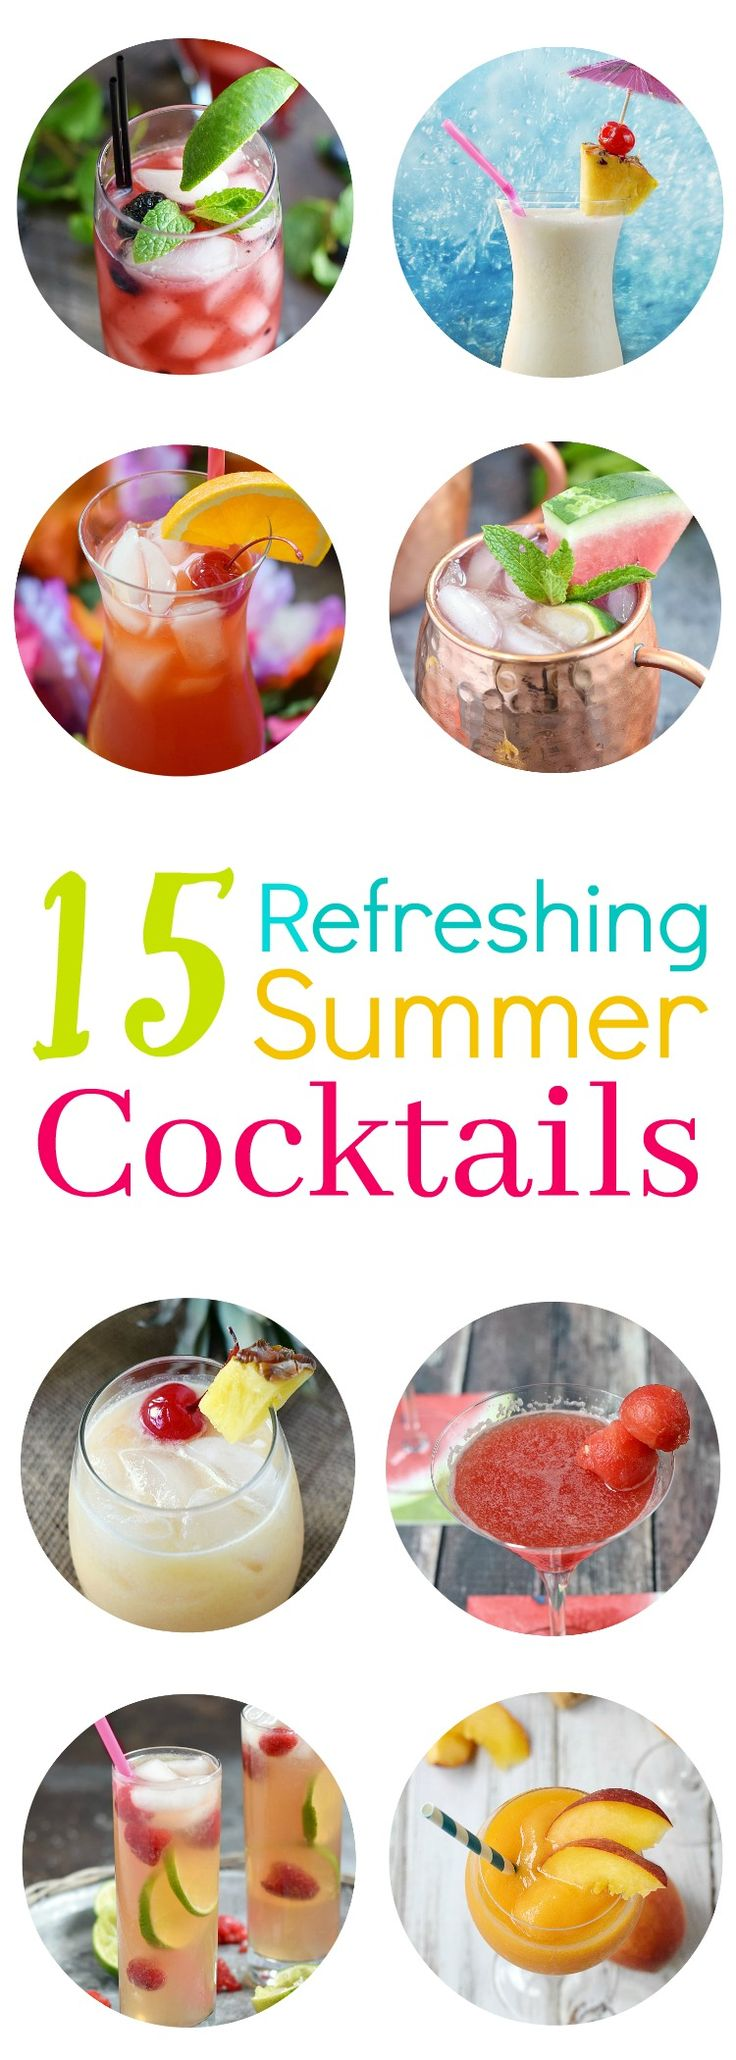 It's time to start thinking about summer barbecues, lounging out by the pool, and these 15 Refreshing Summer Cocktails will keep you cool the entire summer! cookingwithcurls.com